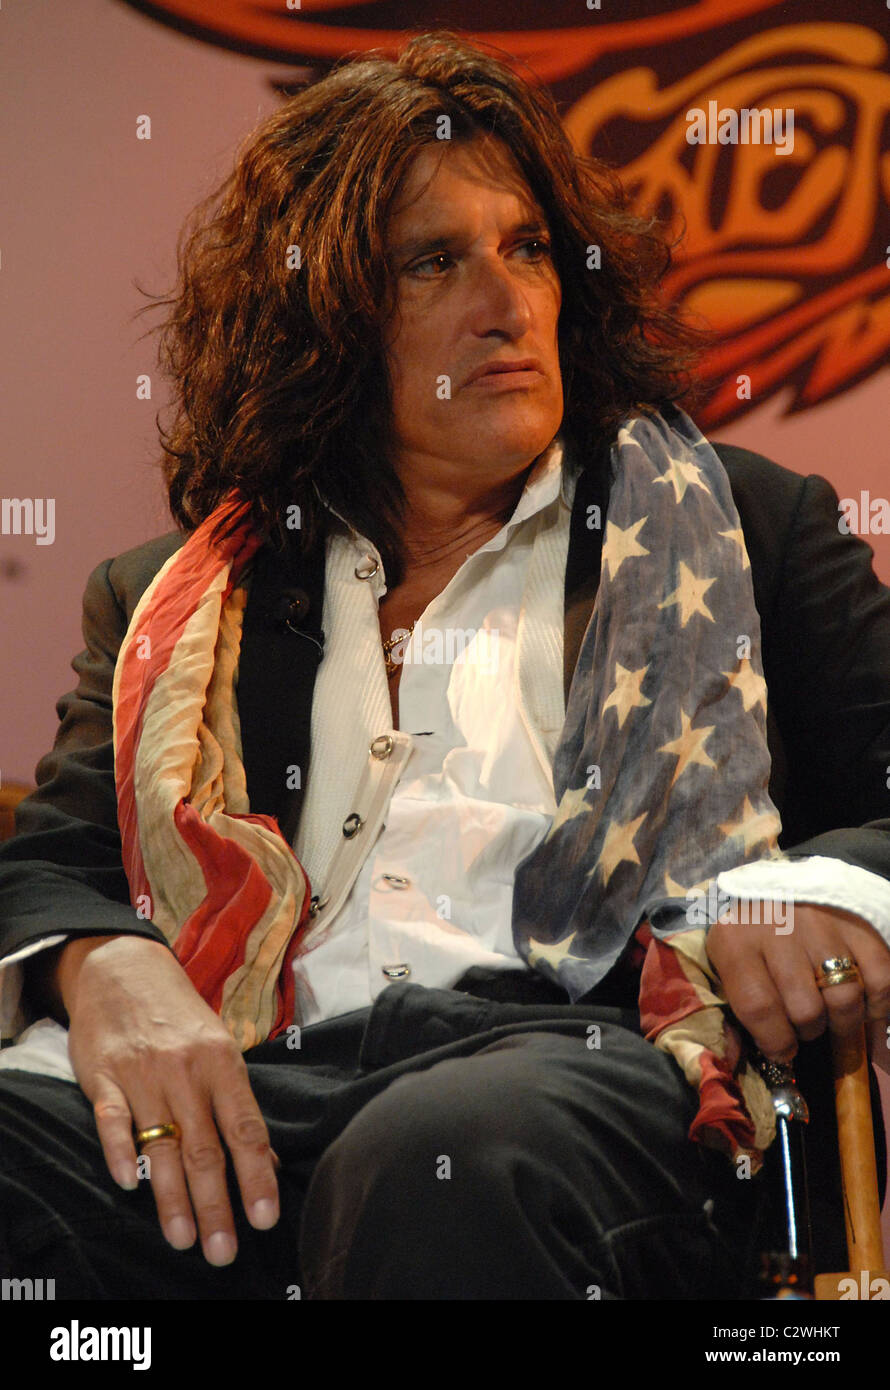 Joe Perry Aerosmith launch the new video game 'Guitar Hero: Aerosmith' at Hard Rock cafe New York City, - Stock Image